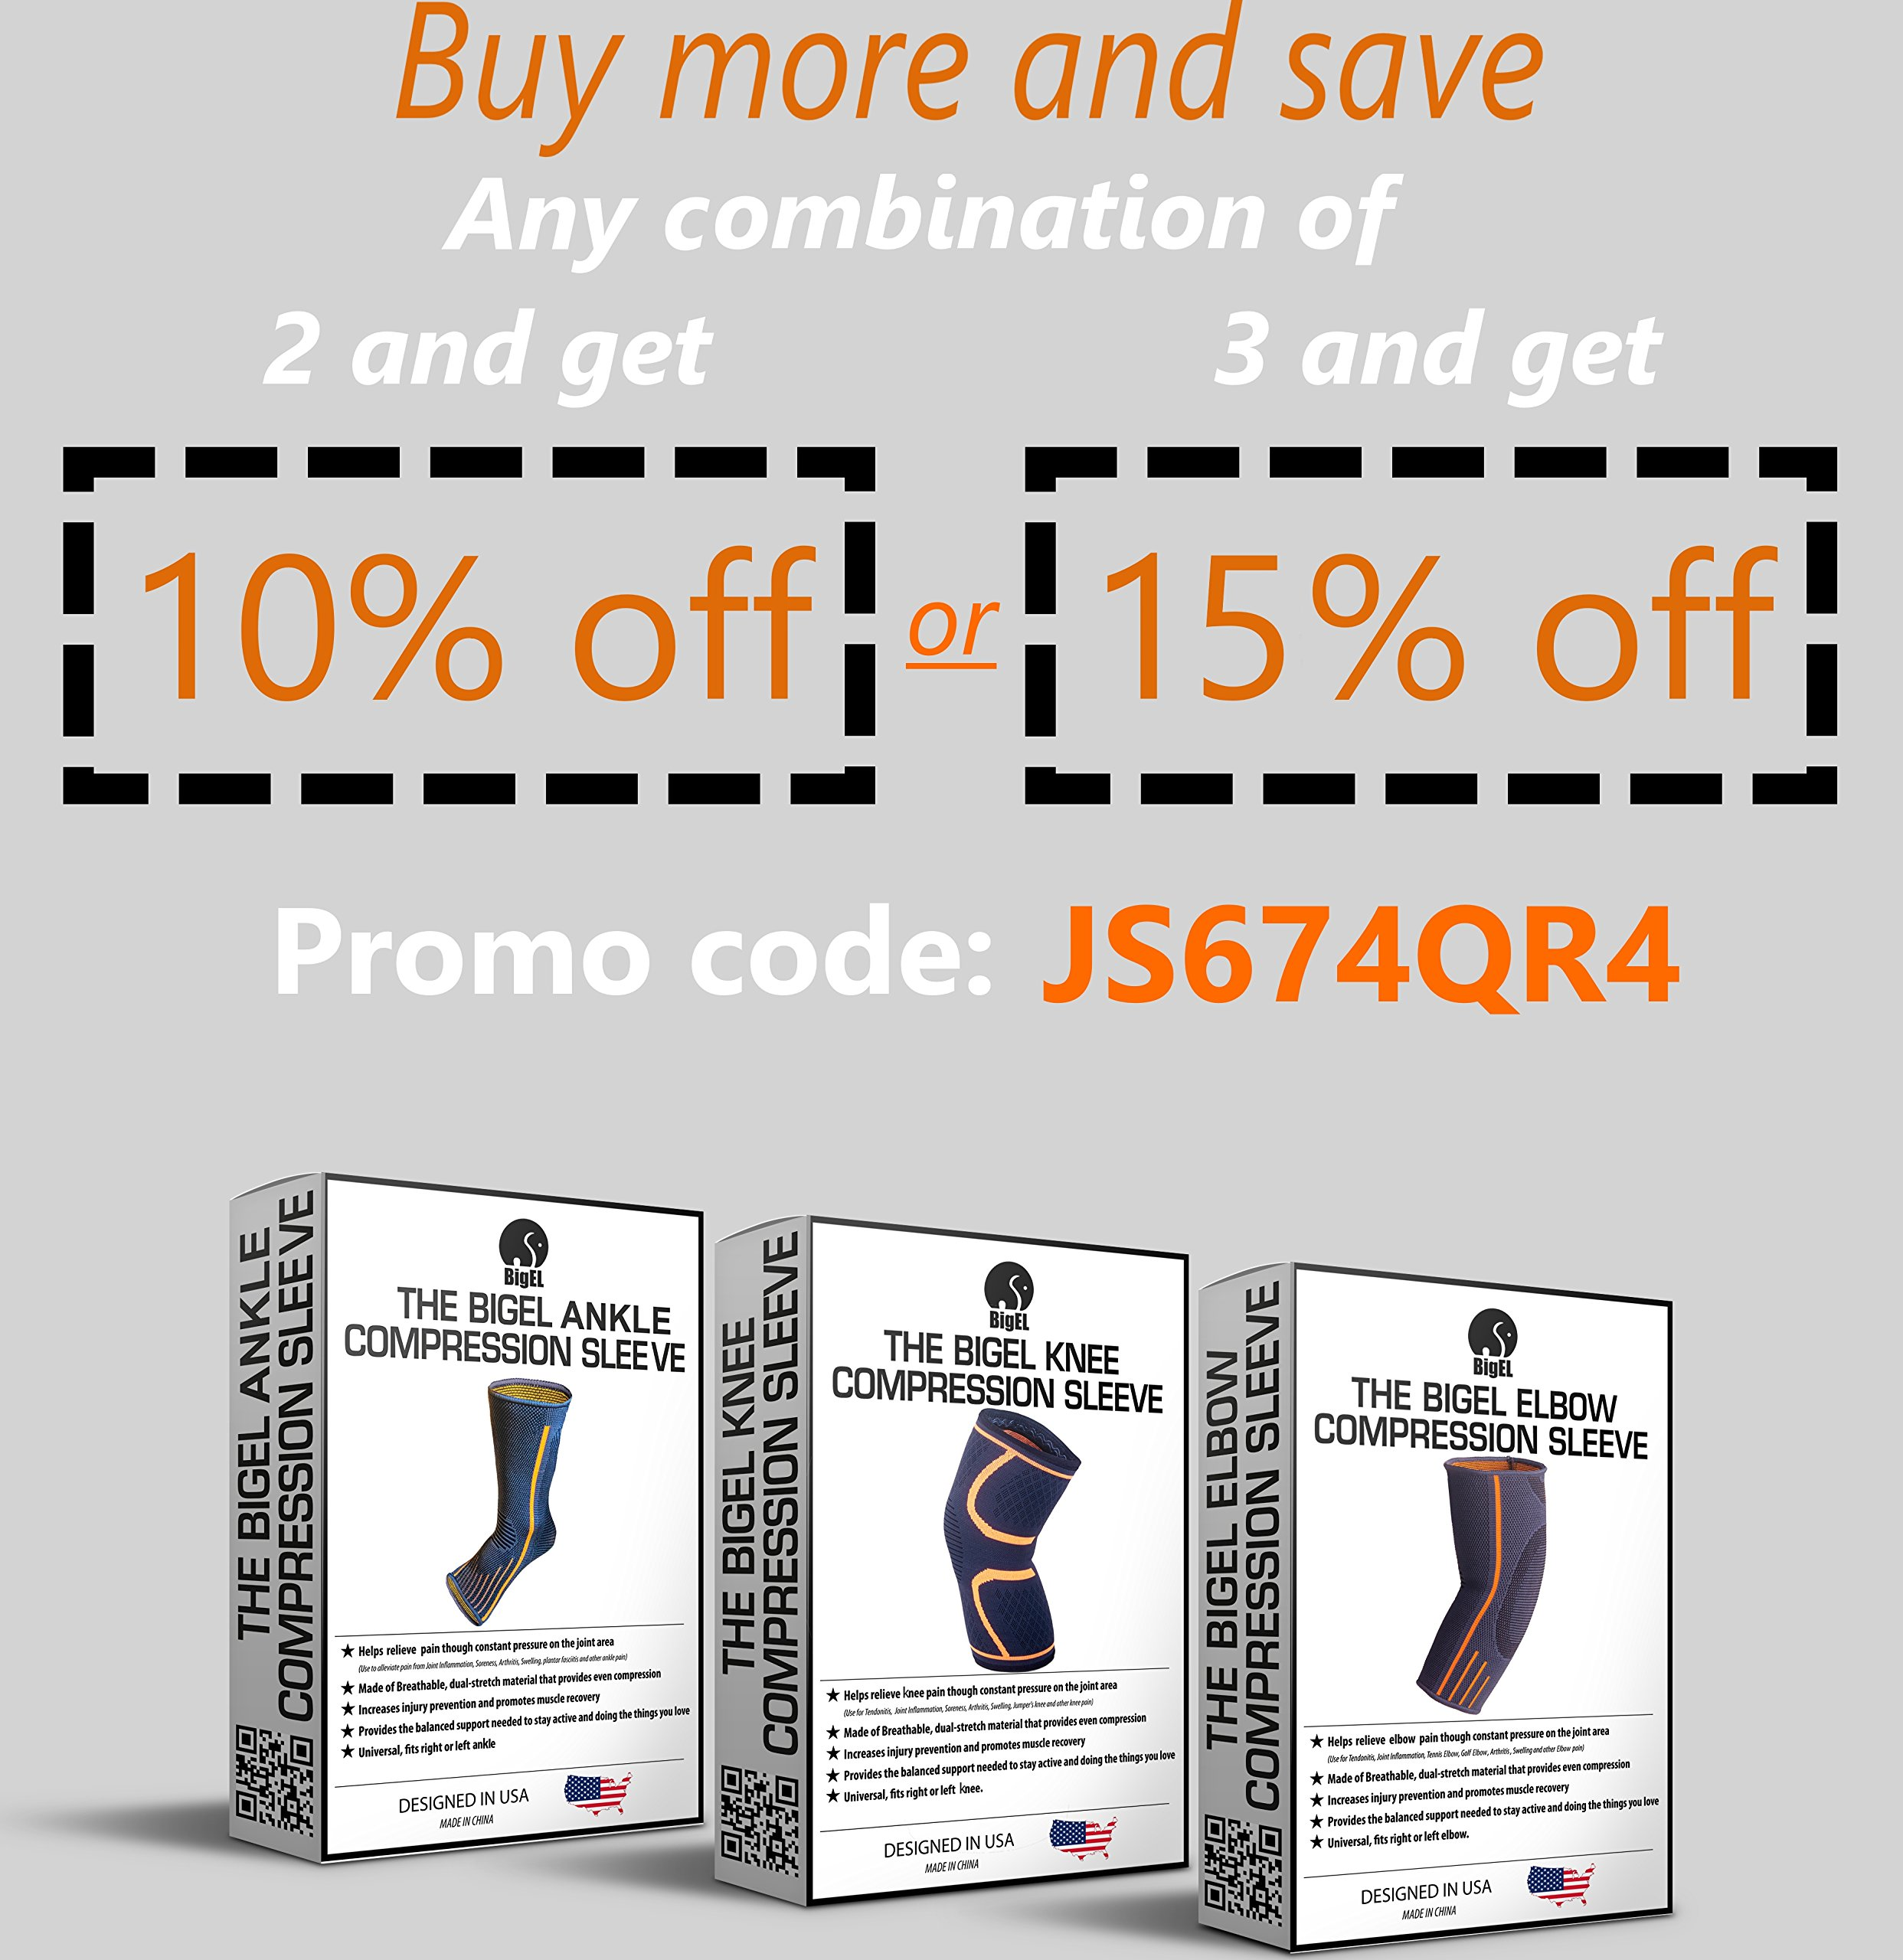 Ankle Brace Compression Sleeve   Arch Support   Foot Sock for Injury Recovery, Joint Pain, Swelling, Achilles Tendon   Pain Relief from Heel Spurs, Plantar Fasciitis   Breathable   Women & Men - M by BigEL (Image #7)